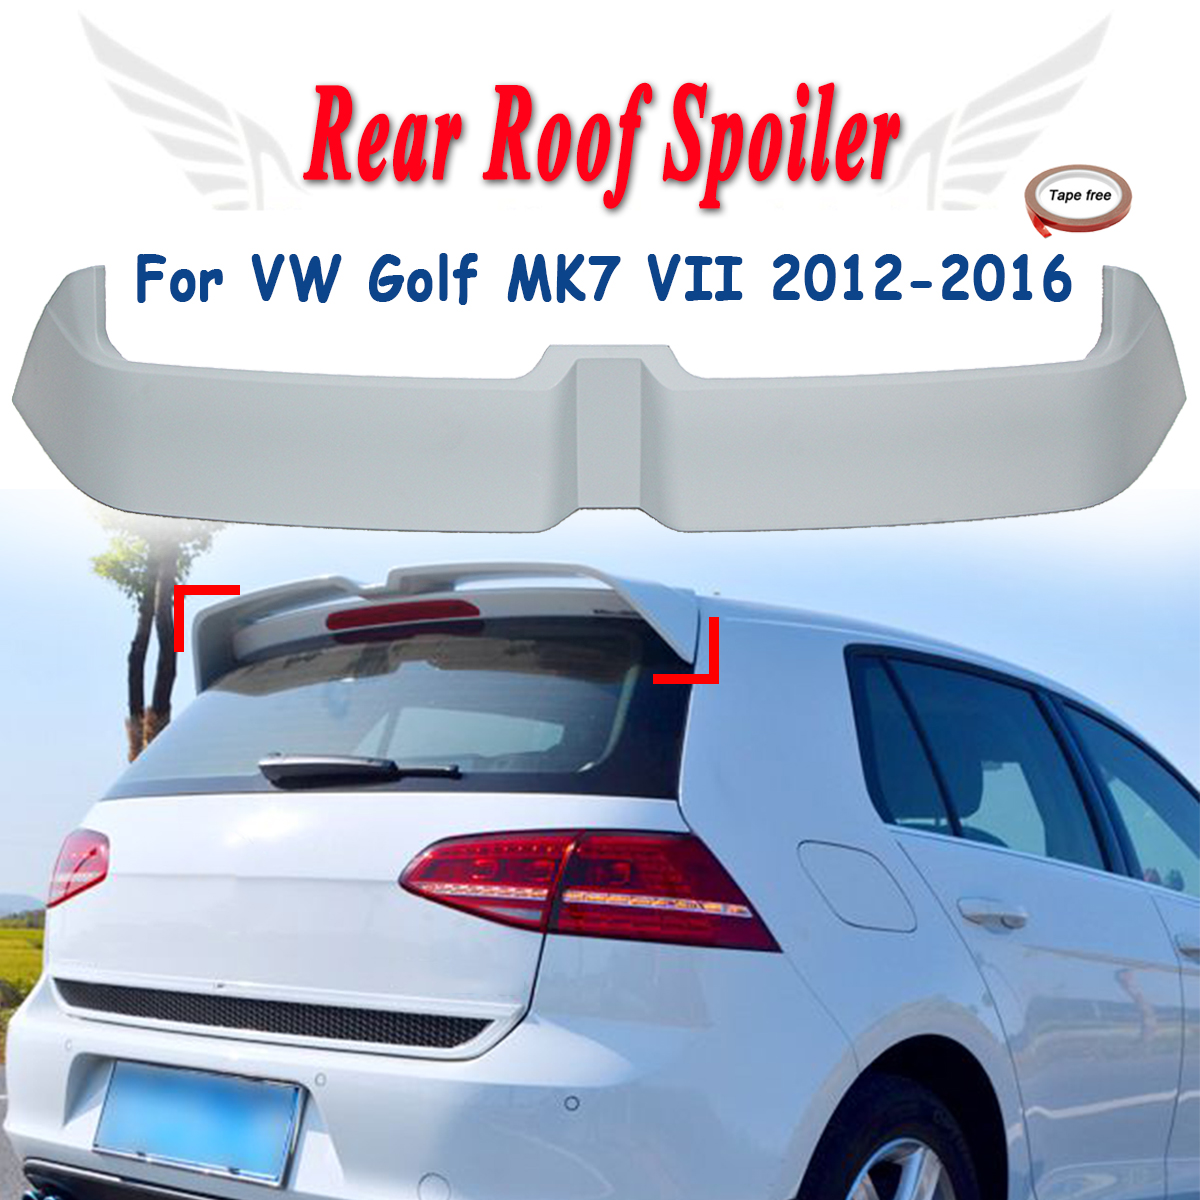 Unapinted Rear Trunk Roof Spoiler Boot Lip Wing Fits For VW Golf MK7 VII GTI GTD 2012-2016 Window Tail Wings FRP